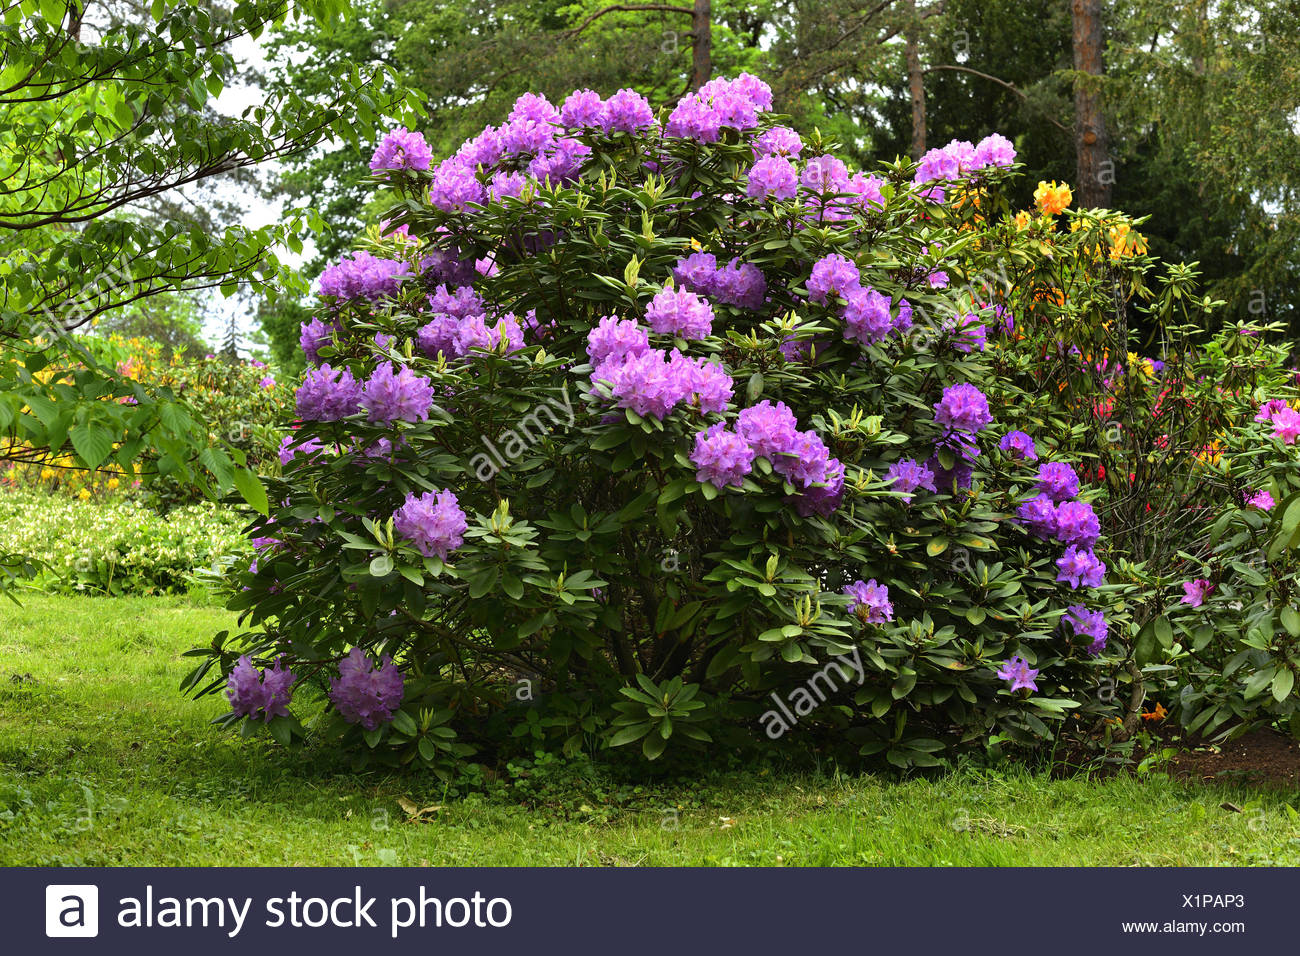 Catawba rhododendron, Catawba rose bay (Rhododendron catawbiense), blooming in a park, Austria, Styria Stock Photo